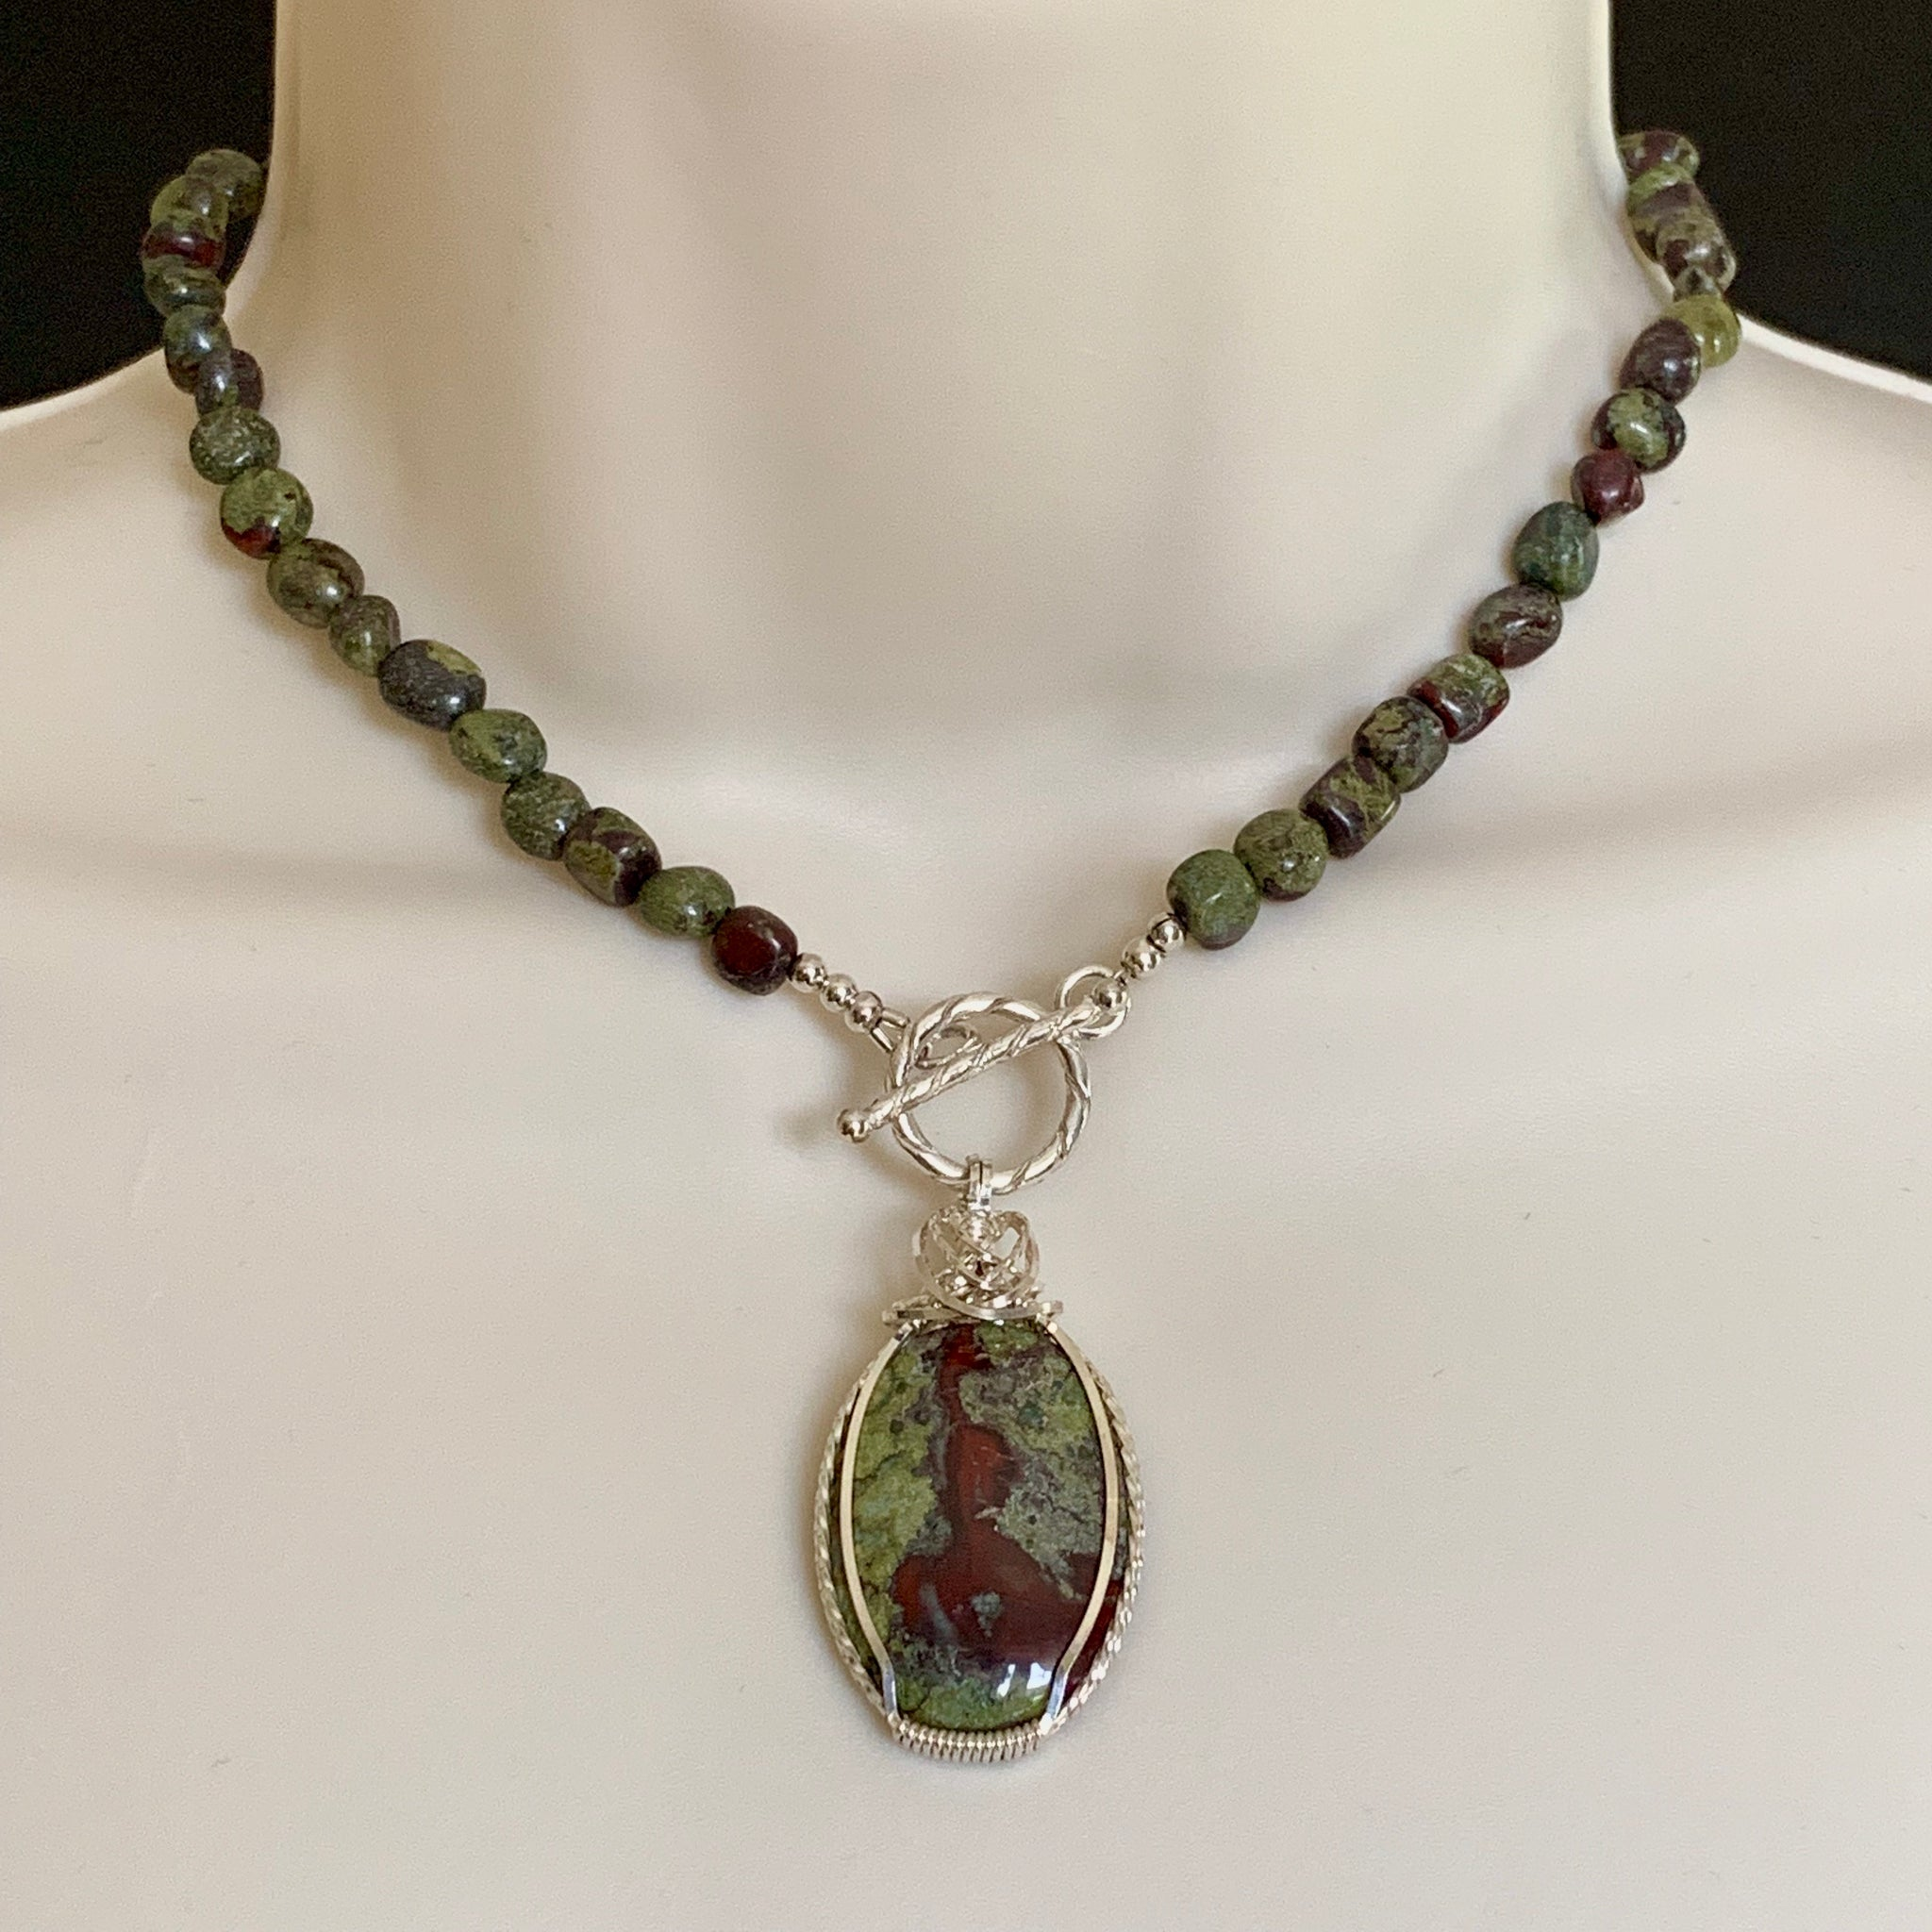 HANDMADE STERLING SILVER NATURAL BLOODSTONE NECKLACE